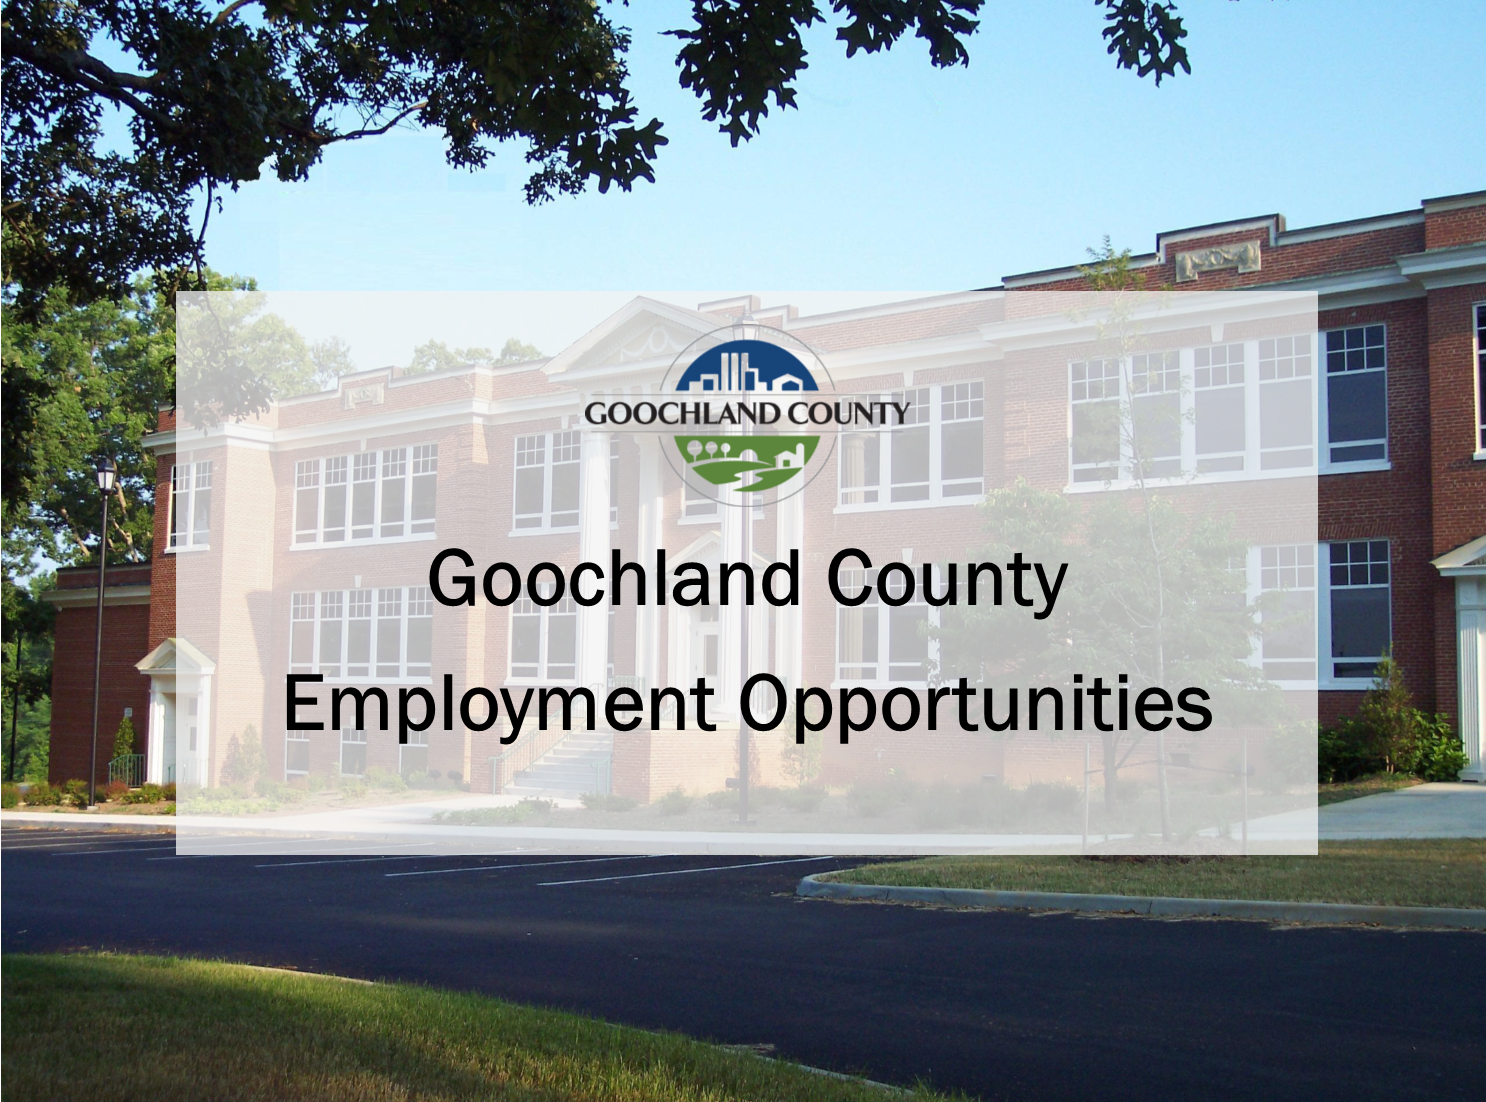 Goochland County Employment Opportunities